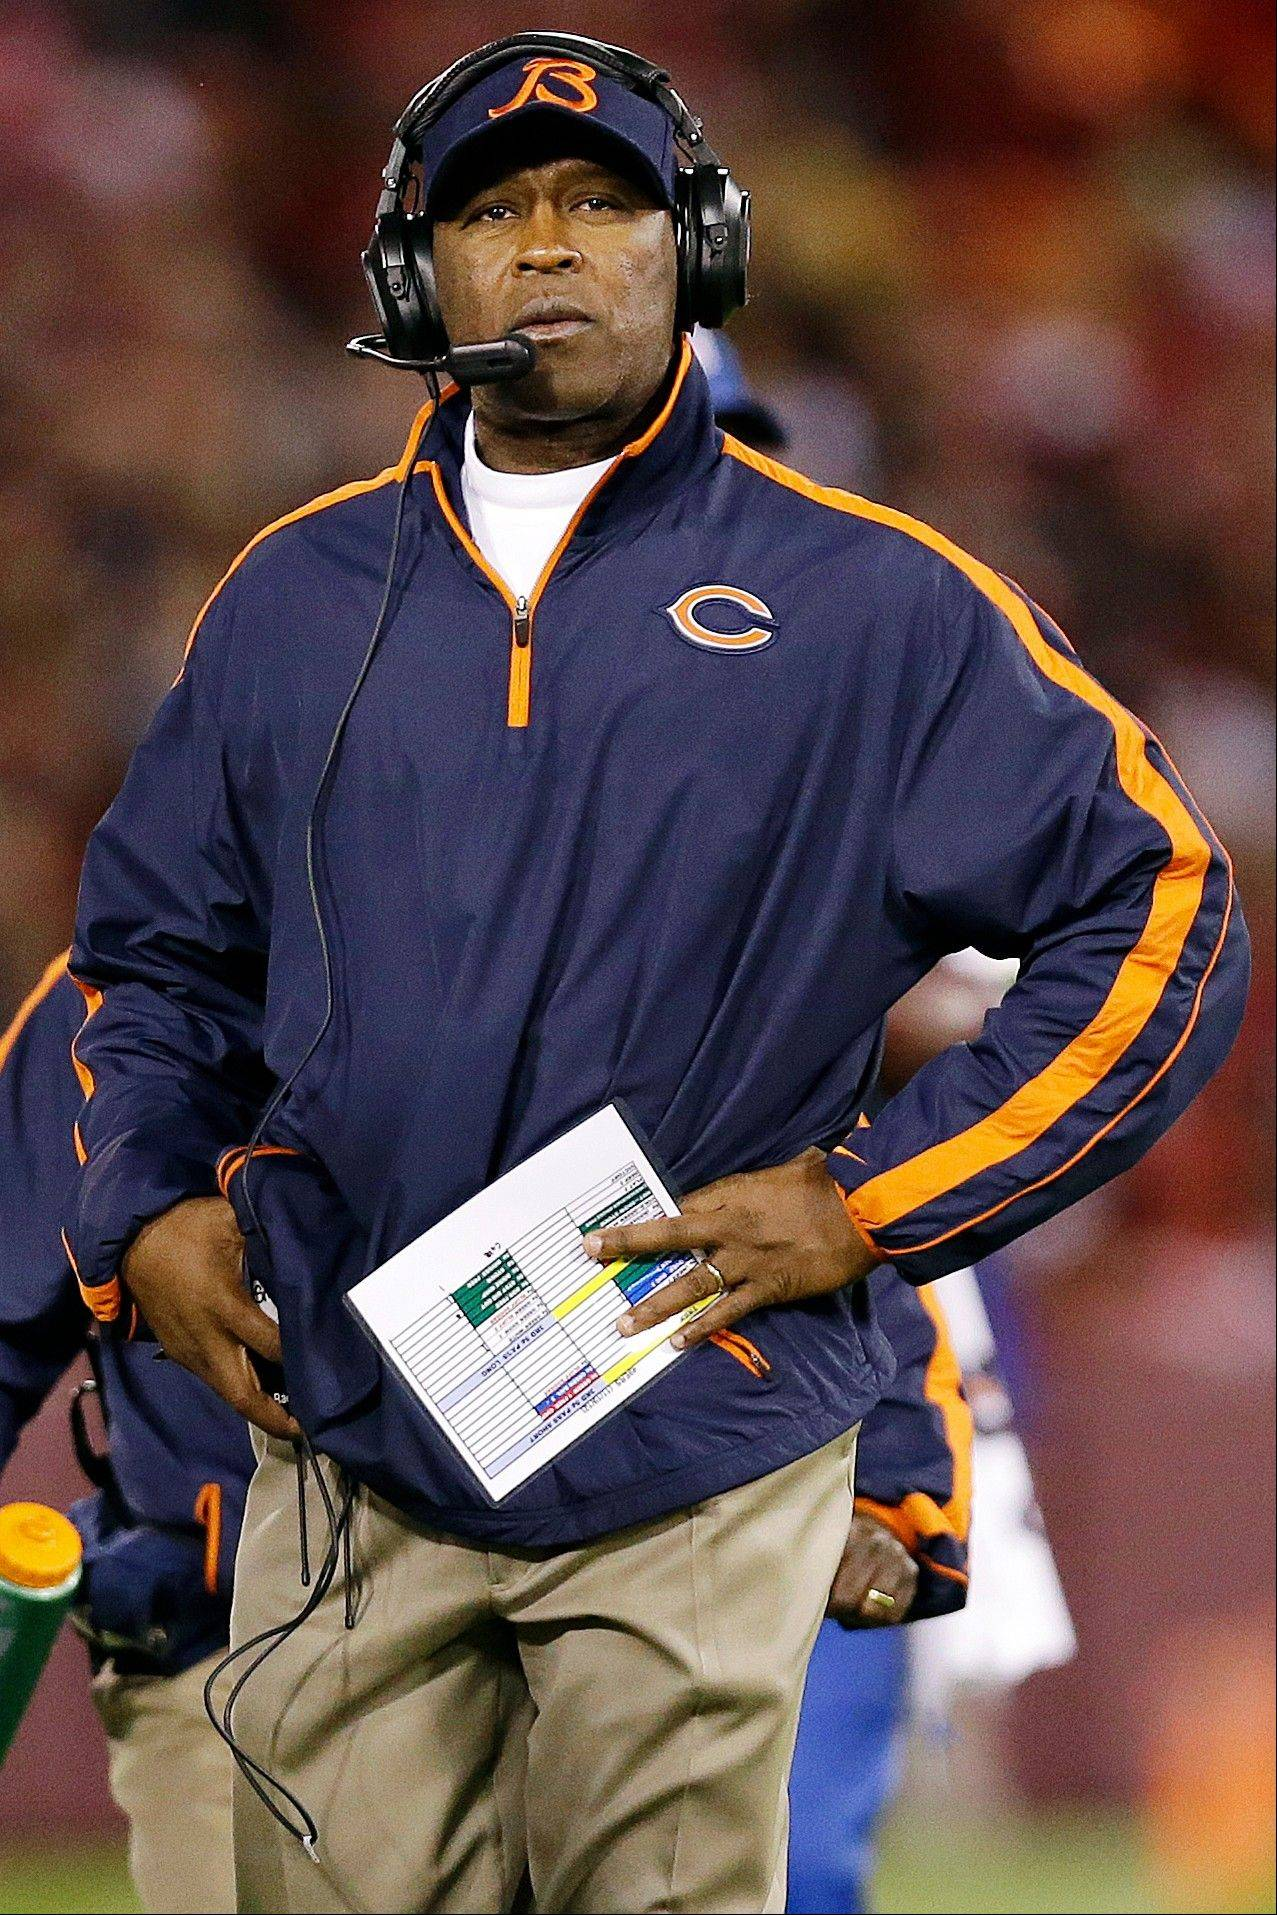 Chicago Bears head coach Lovie Smith stands on the sideline during the third quarter.